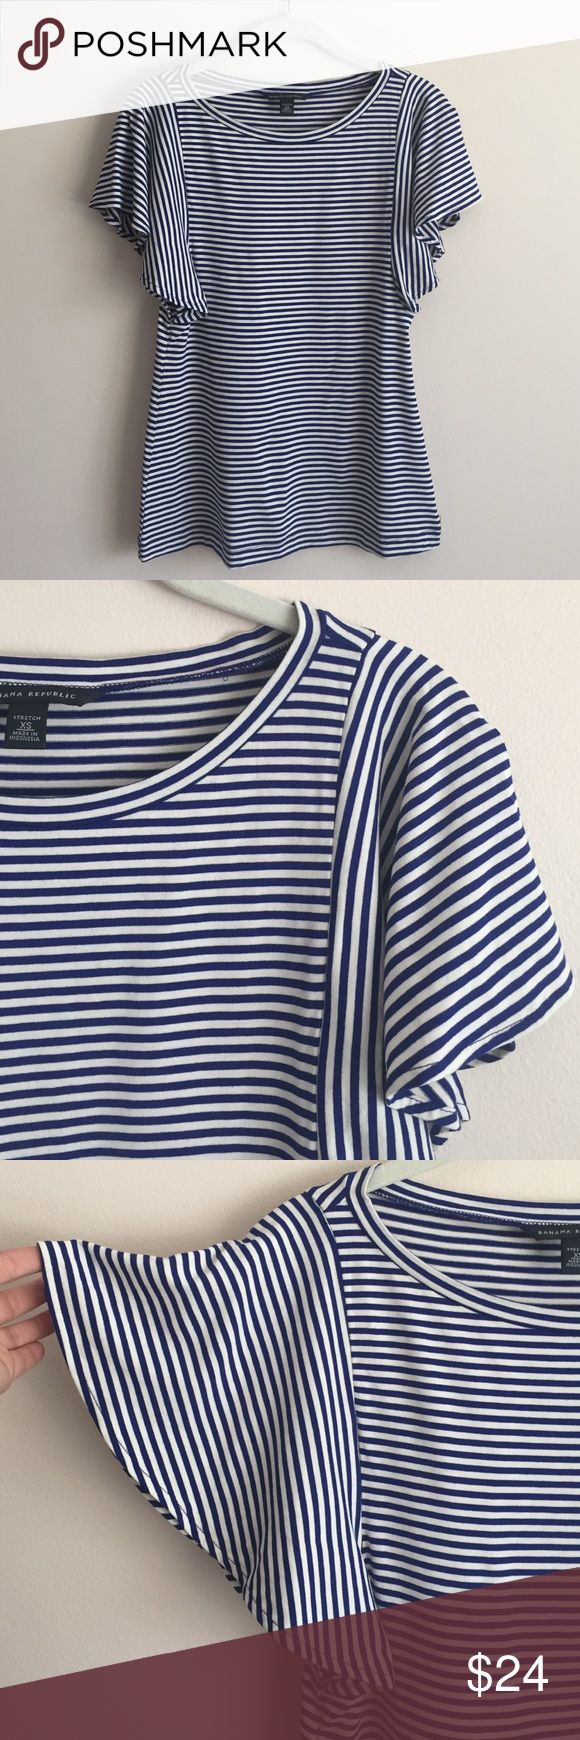 Banana Republic stripe flutter sleeve top Banana Republic blue/white stripe flutter sleeve stretch rayon/spandex top - perfect condition only worn once! Banana Republic Tops